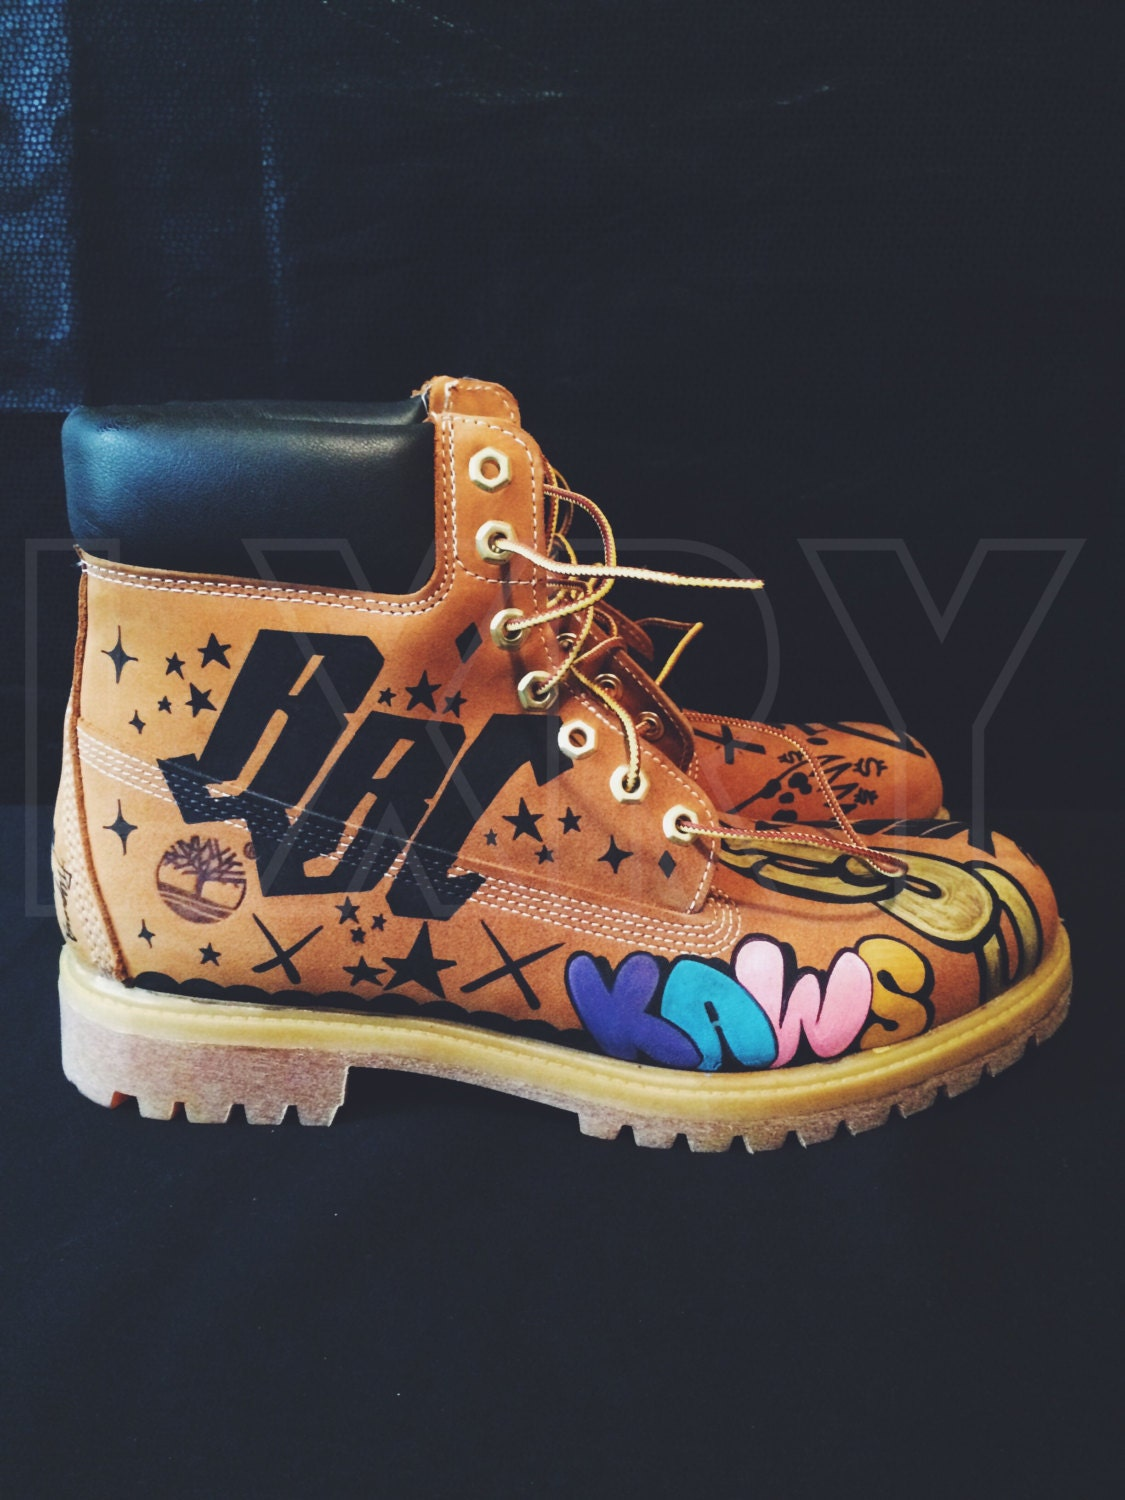 Customized Timberlands With Spikes Custom Timberland Boots